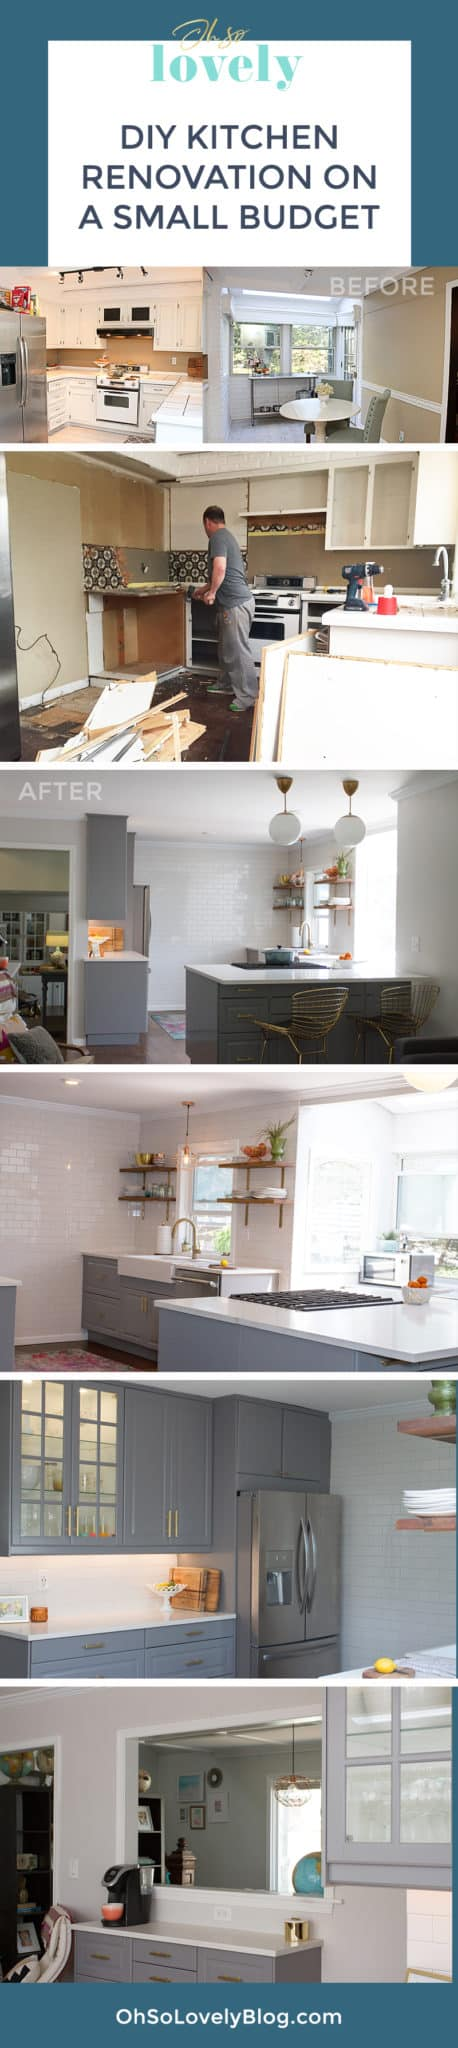 Audrey of Oh So Lovely blog shares the 2+ year journey of a DIY kitchen remodel on a small budget. Check out all the the before, during and after photos + product details!